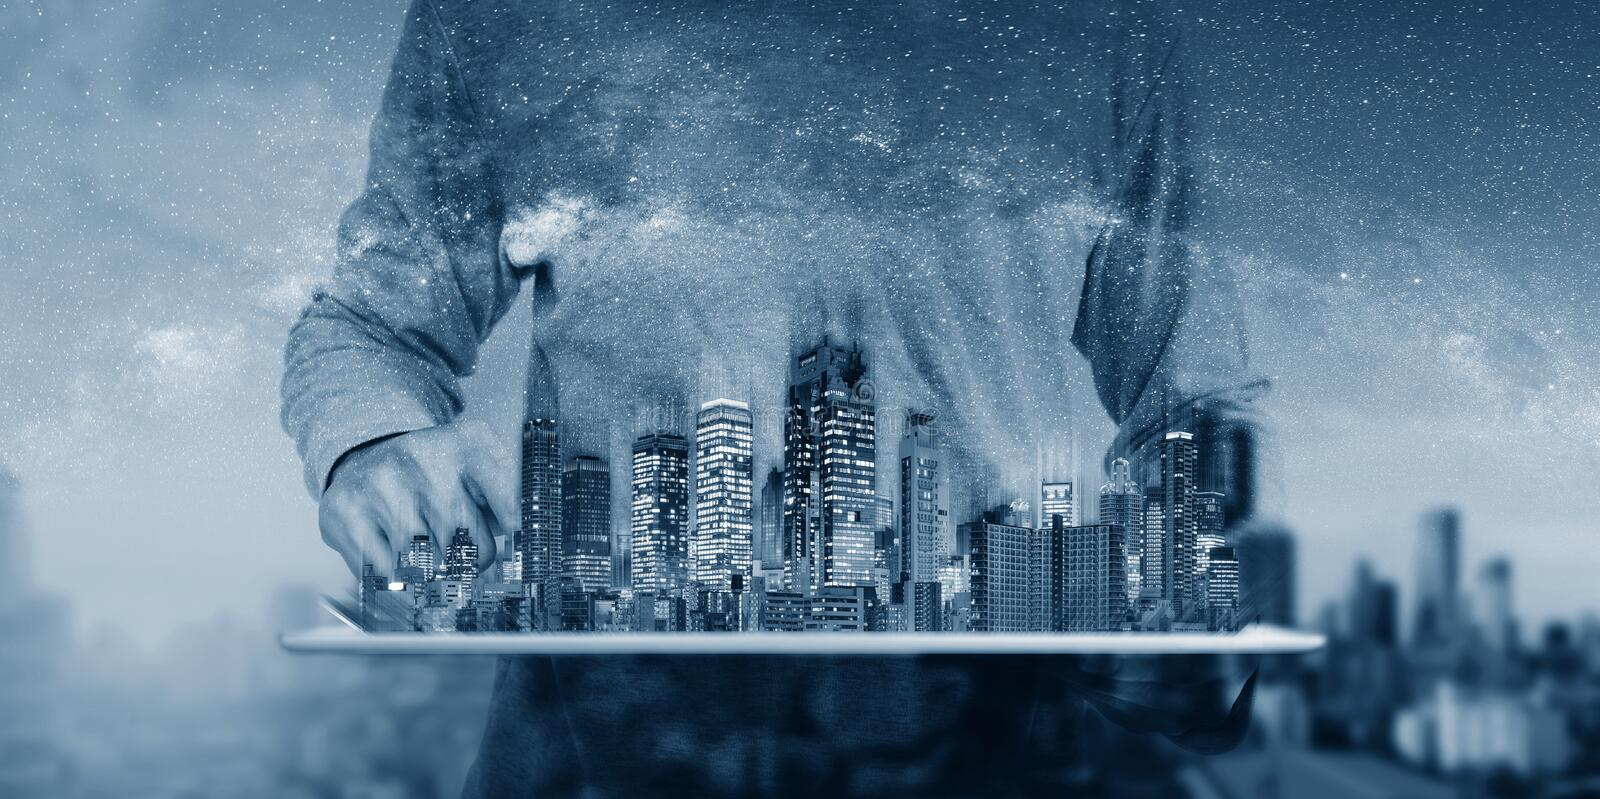 Real estate business and investment, building technology. a man using digital tablet with buildings hologram stock image